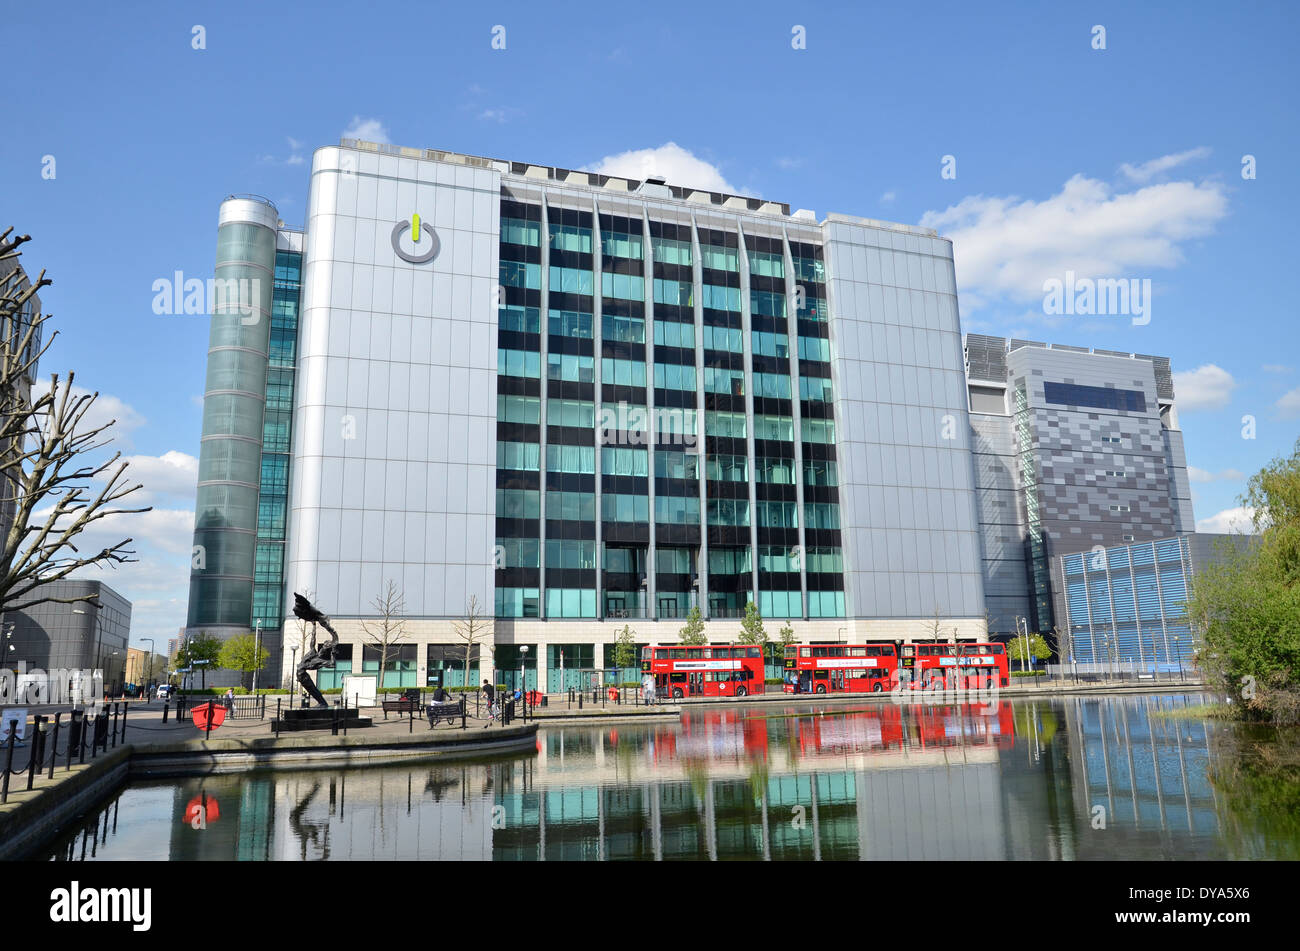 The Global Switch offices in East India Docks, east London Stock Photo